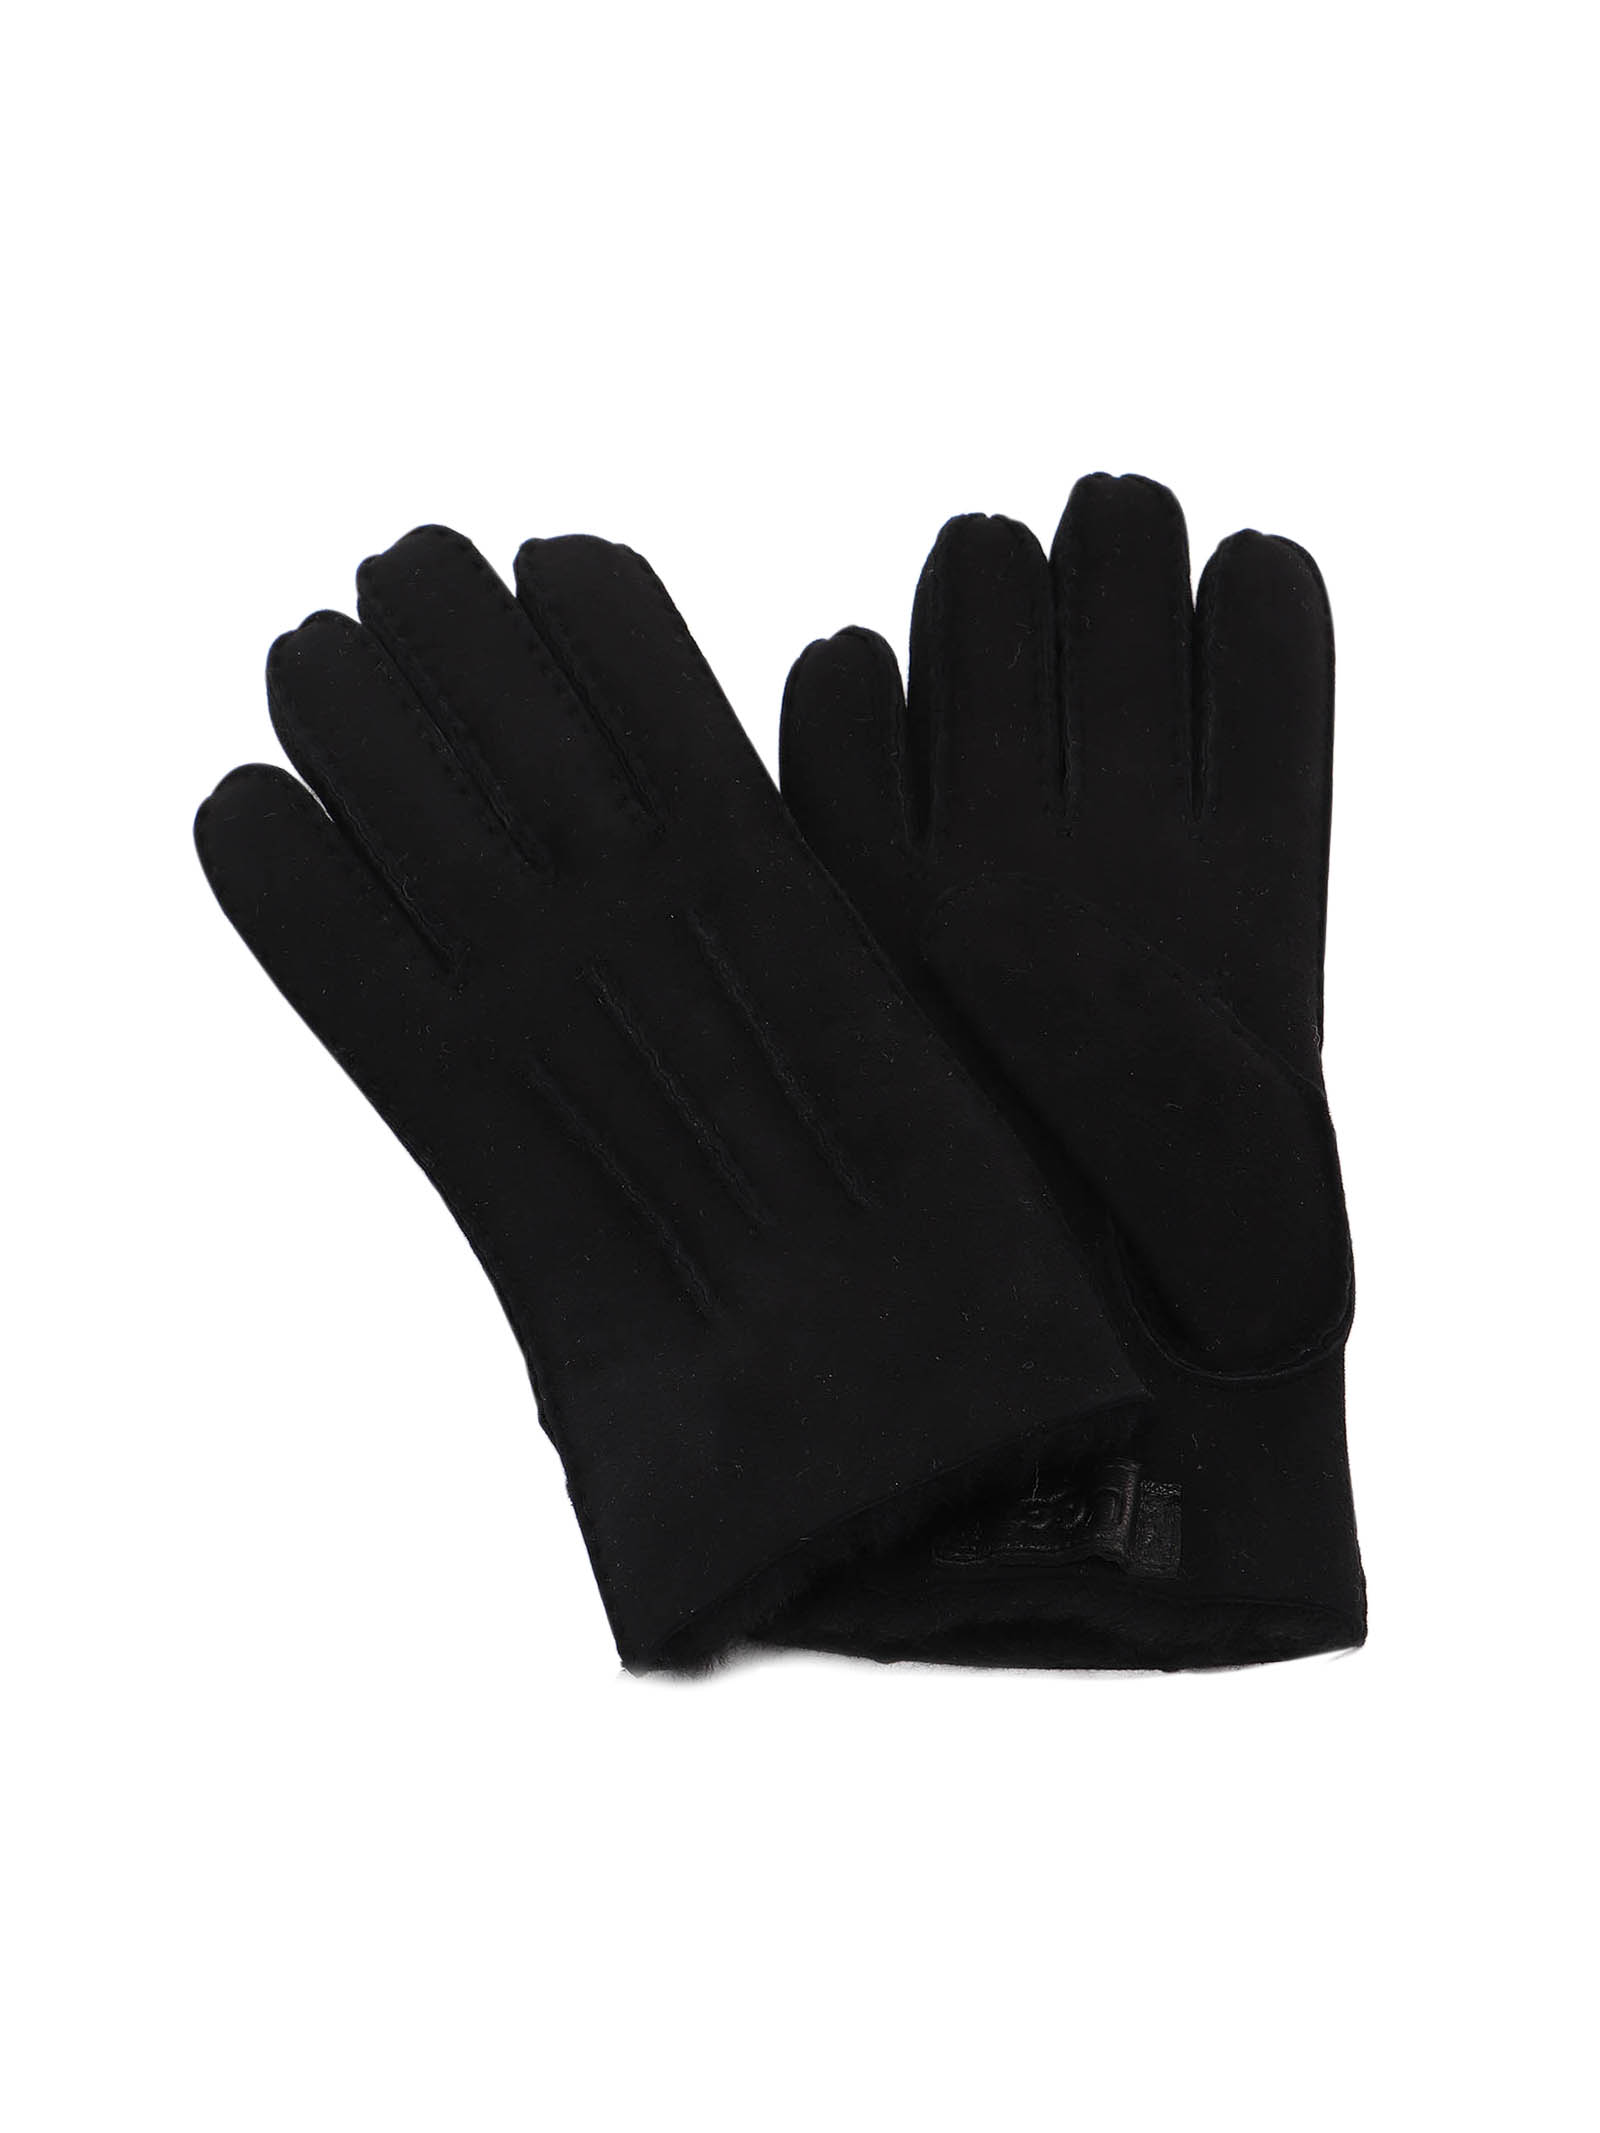 uggs gloves size chart